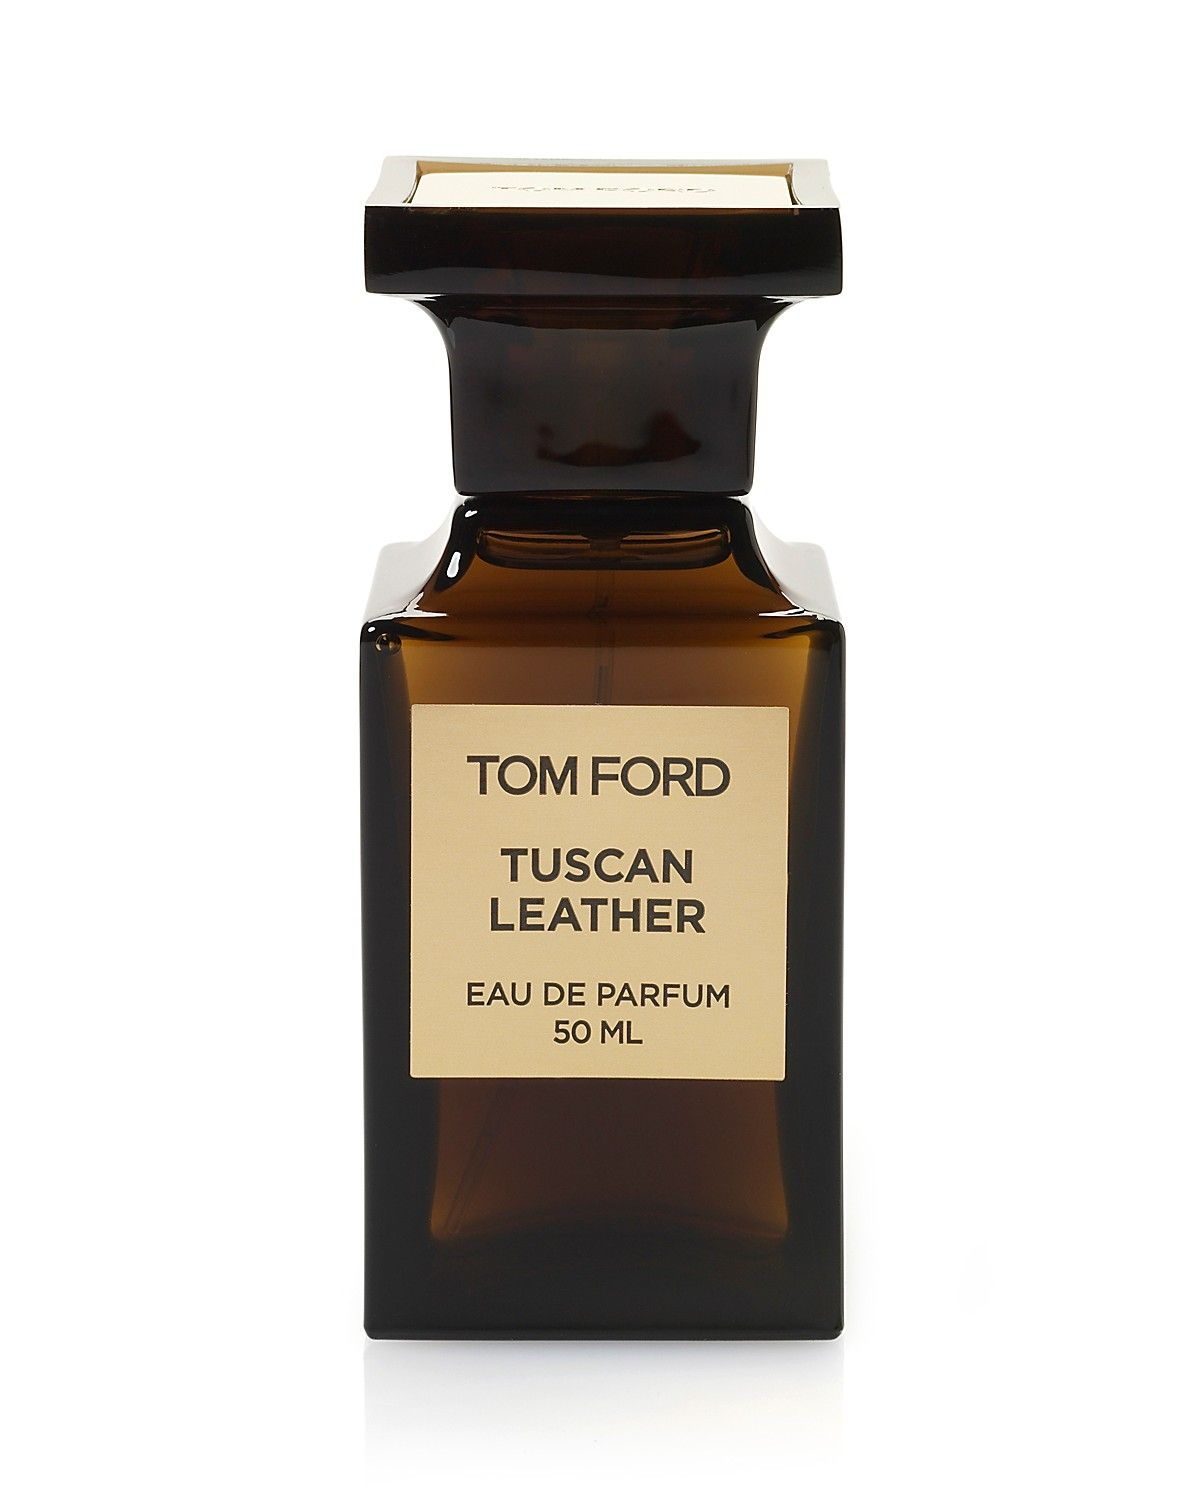 e8f3a6c548b47 Tom Ford Tuscan Leather...layer this with the Tom Ford Tobacco  Vanille..you ll never be the same.